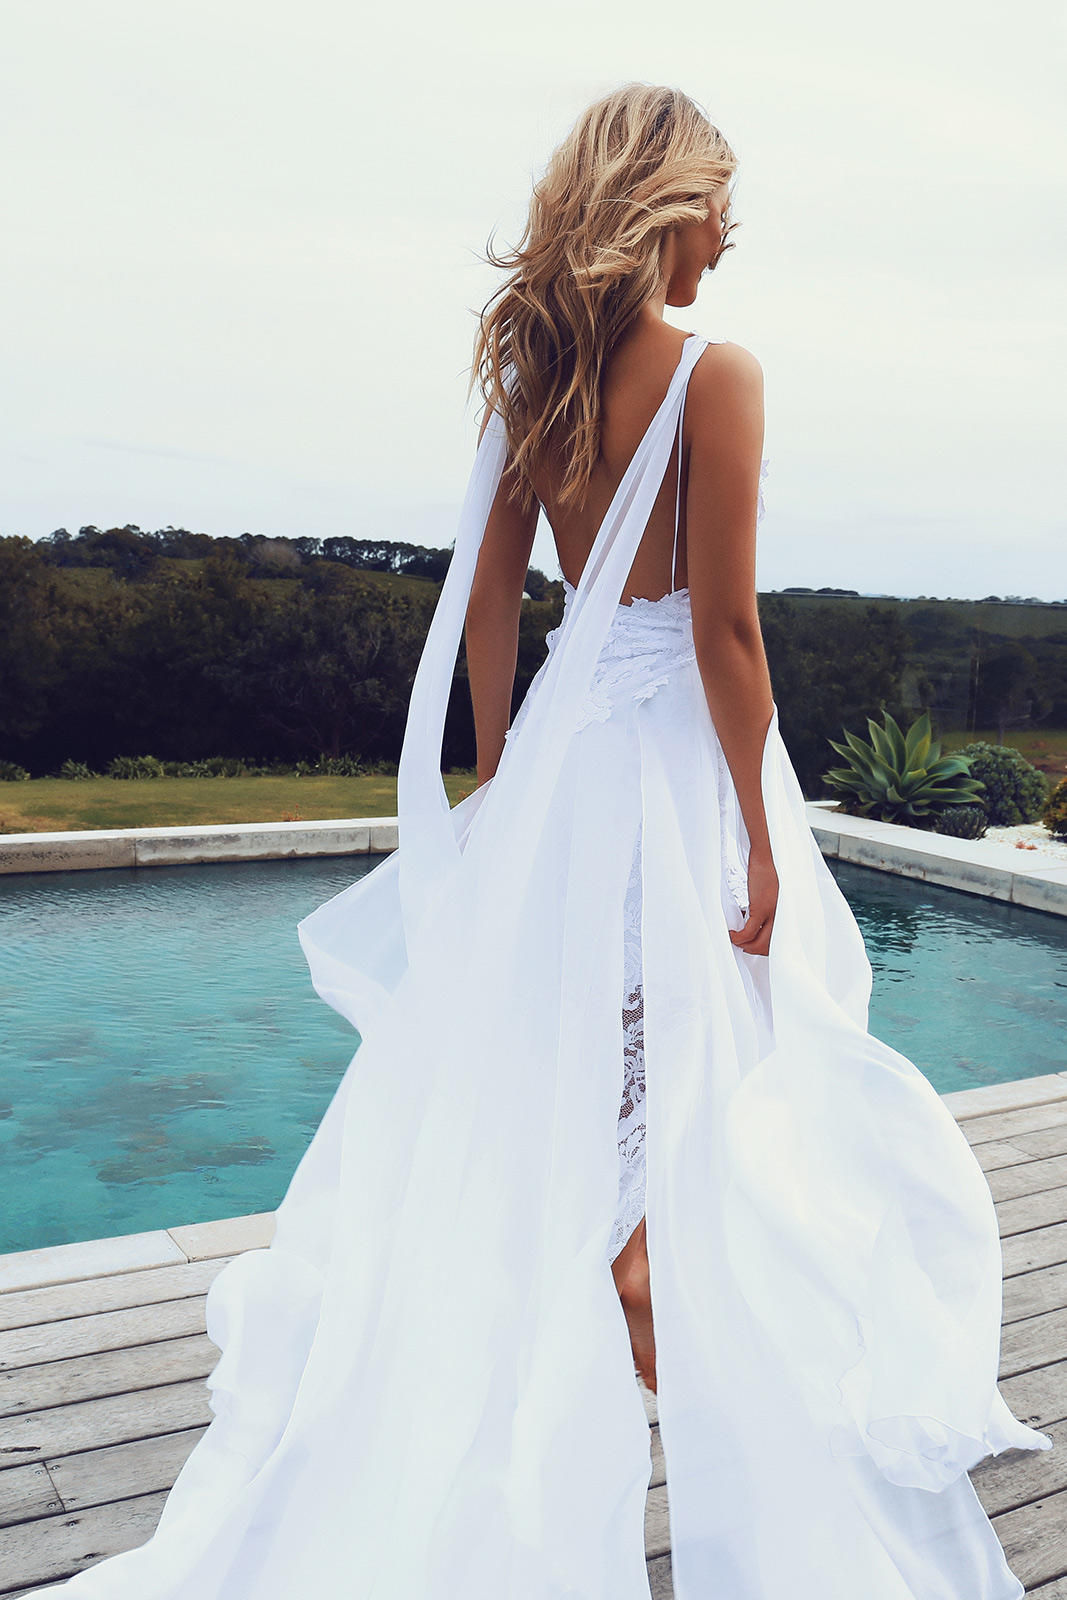 Hollie 2 wedding dress most pinned on pinterest beautiful (2)